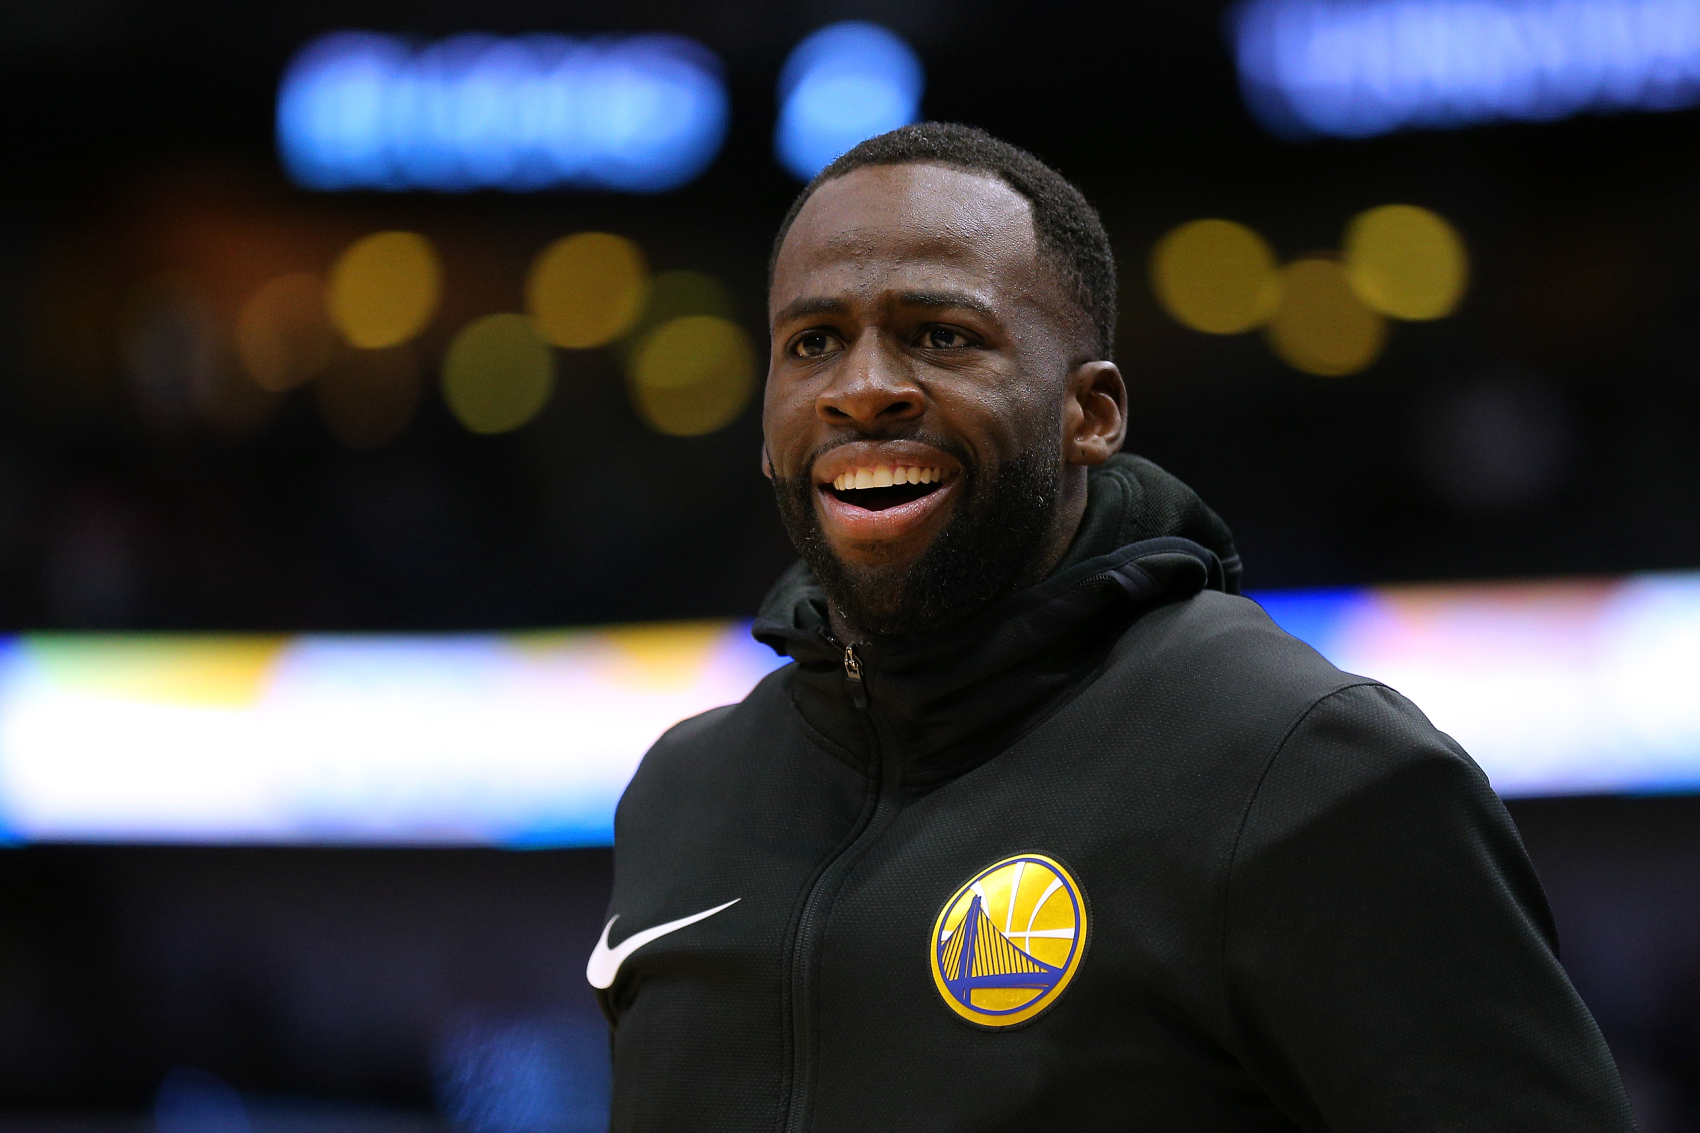 The NBA has fined Golden State Warriors star Draymond Green many times throughout the years. However, Green still has a massive net worth.